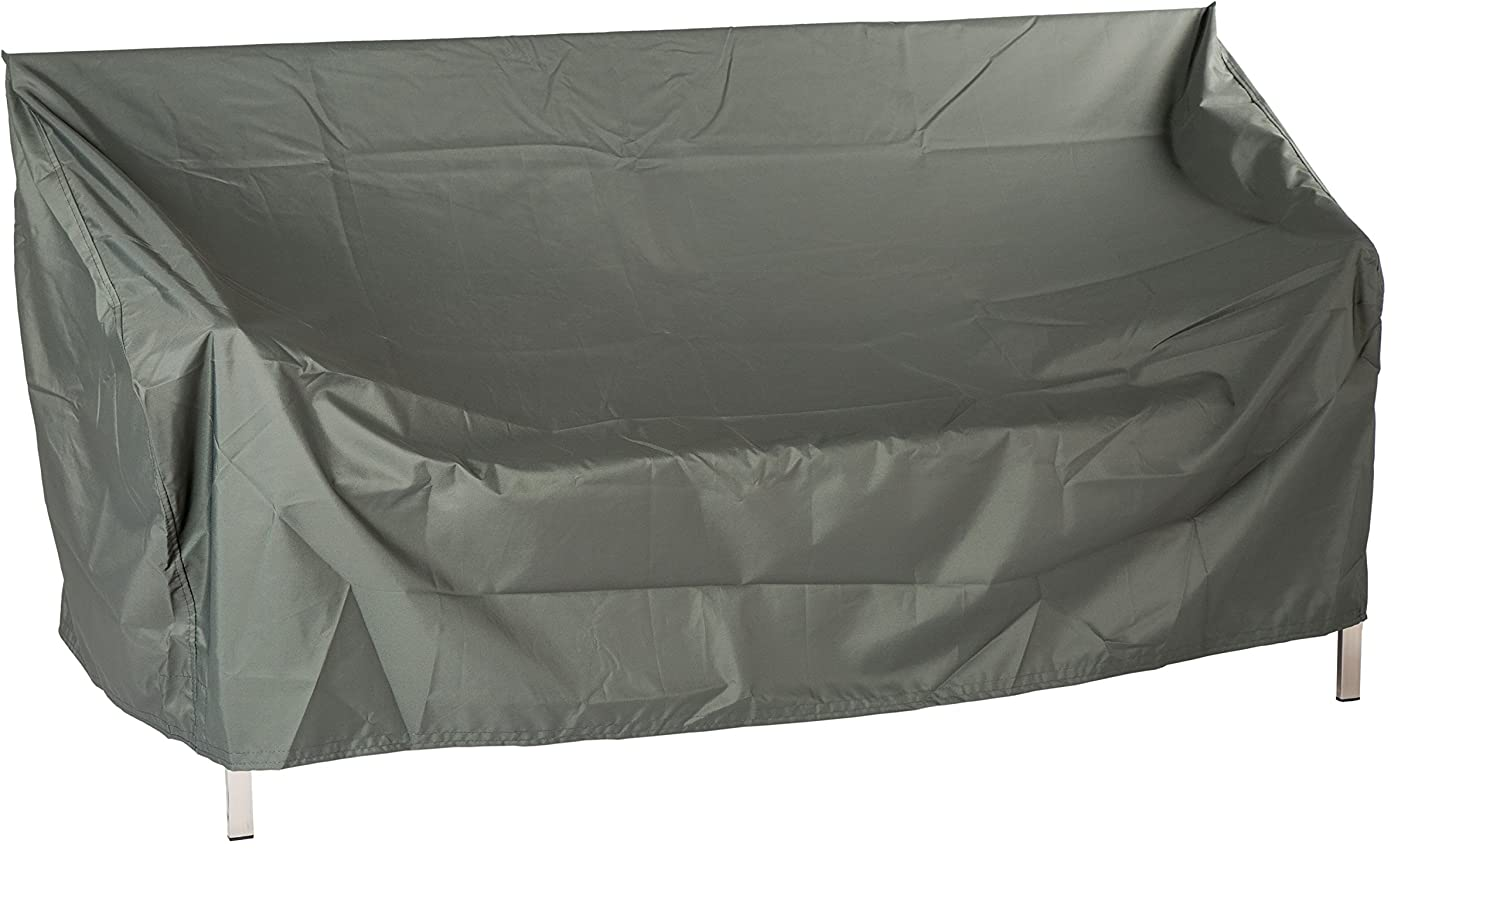 Star Protective Cover for Garden Furniture, 2-Seater Bench Plain Grey, 150x 55x 80cm, 1.3ml, 454804 Stern GmbH